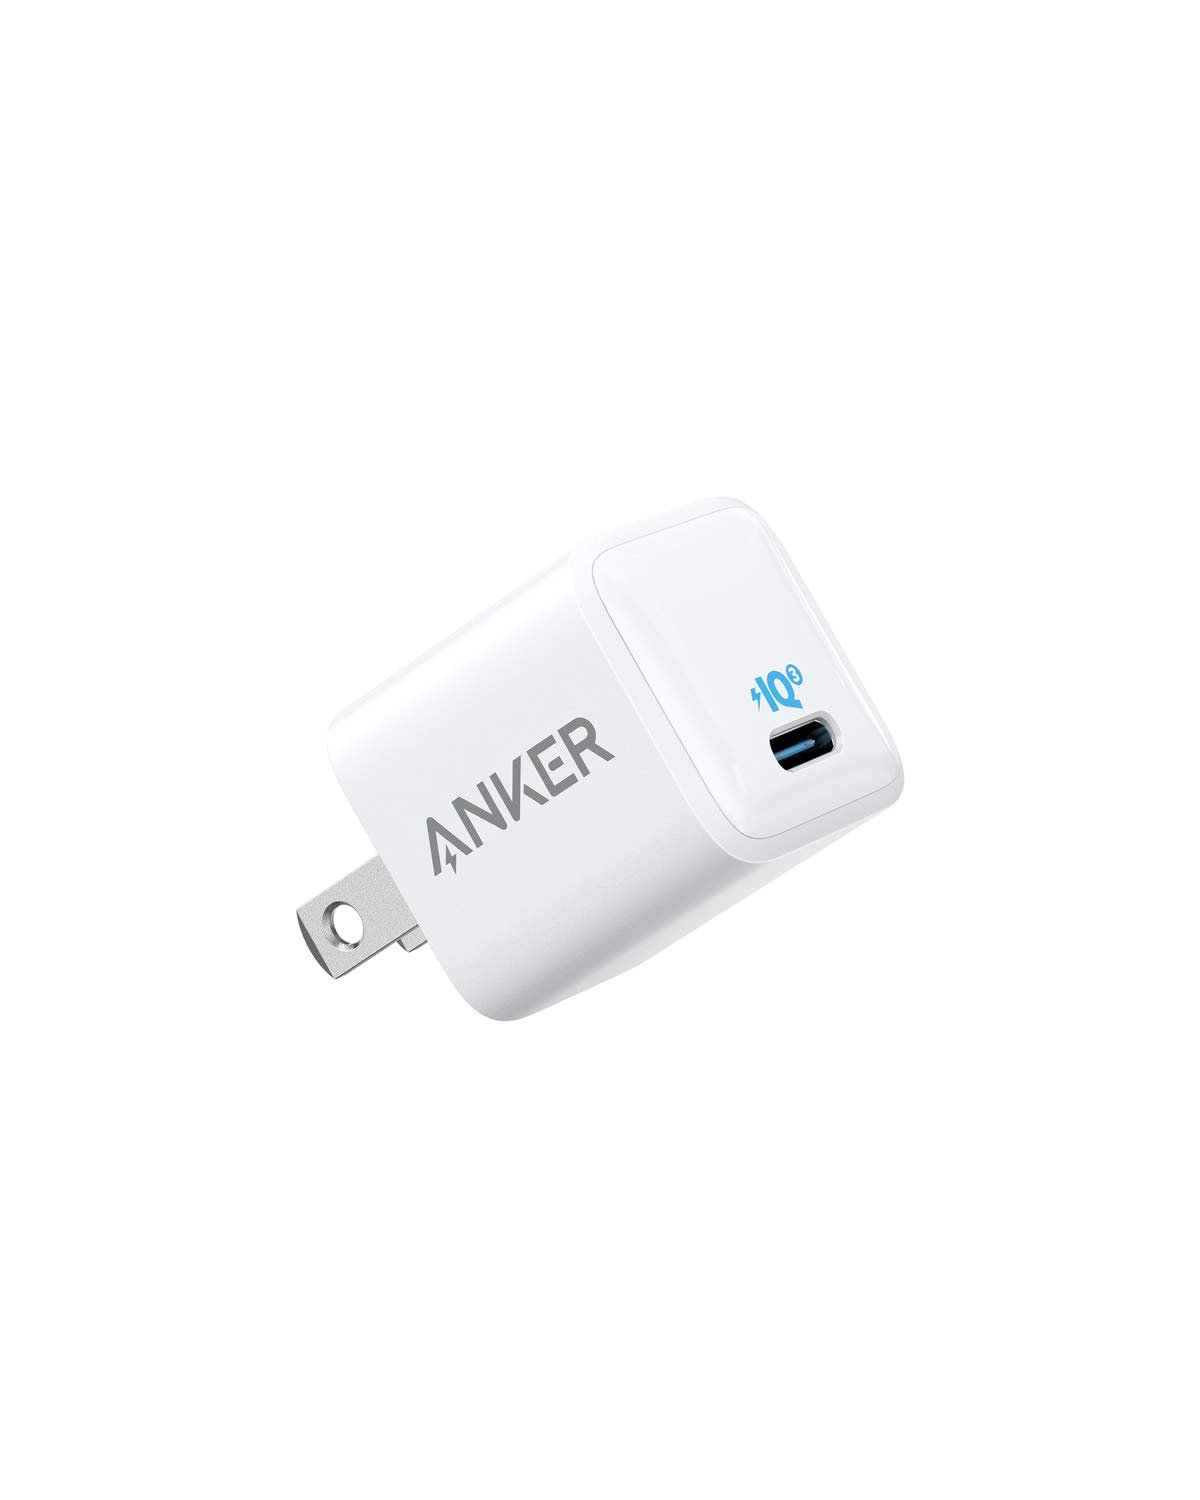 Anker USB C Charger, 18W PIQ 3.0 Type C Wall Charger, PowerPort III Nano Compact Travel Charger Adapter, for iPhone 11/11 Pro / 11 Pro Max/XR/XS/X, Galaxy S10 / S9, Pixel, iPad Pro and More by Anker